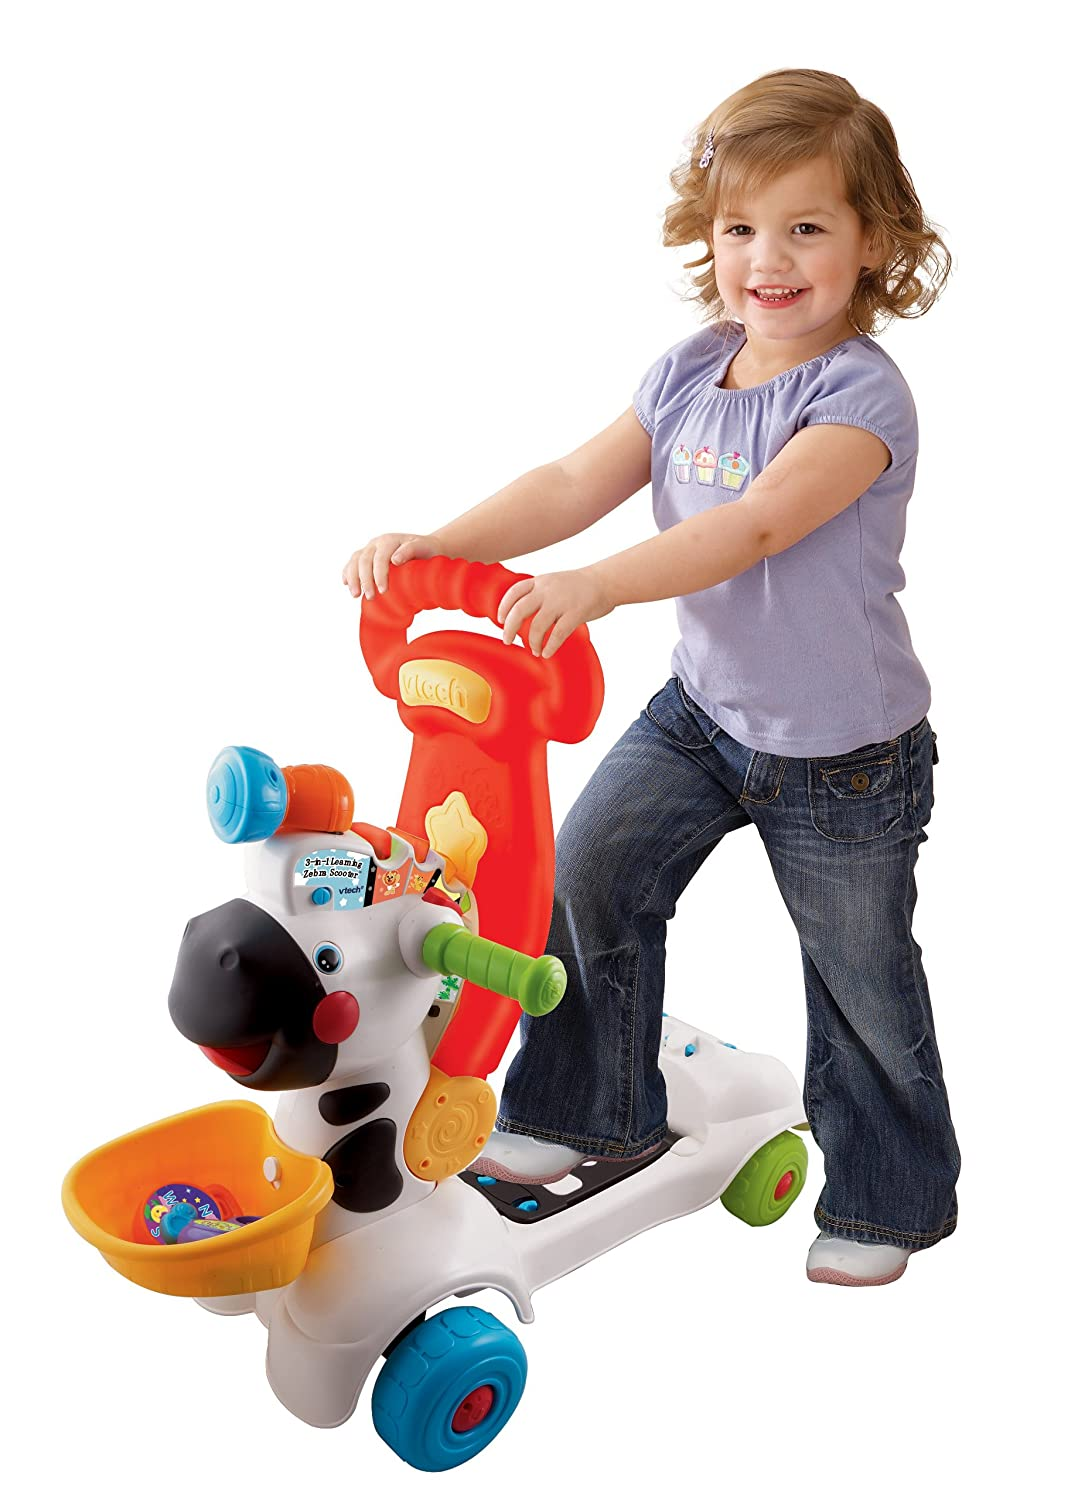 Top Vtech Toys : Vtech in learning zebra scooter best gifts top toys